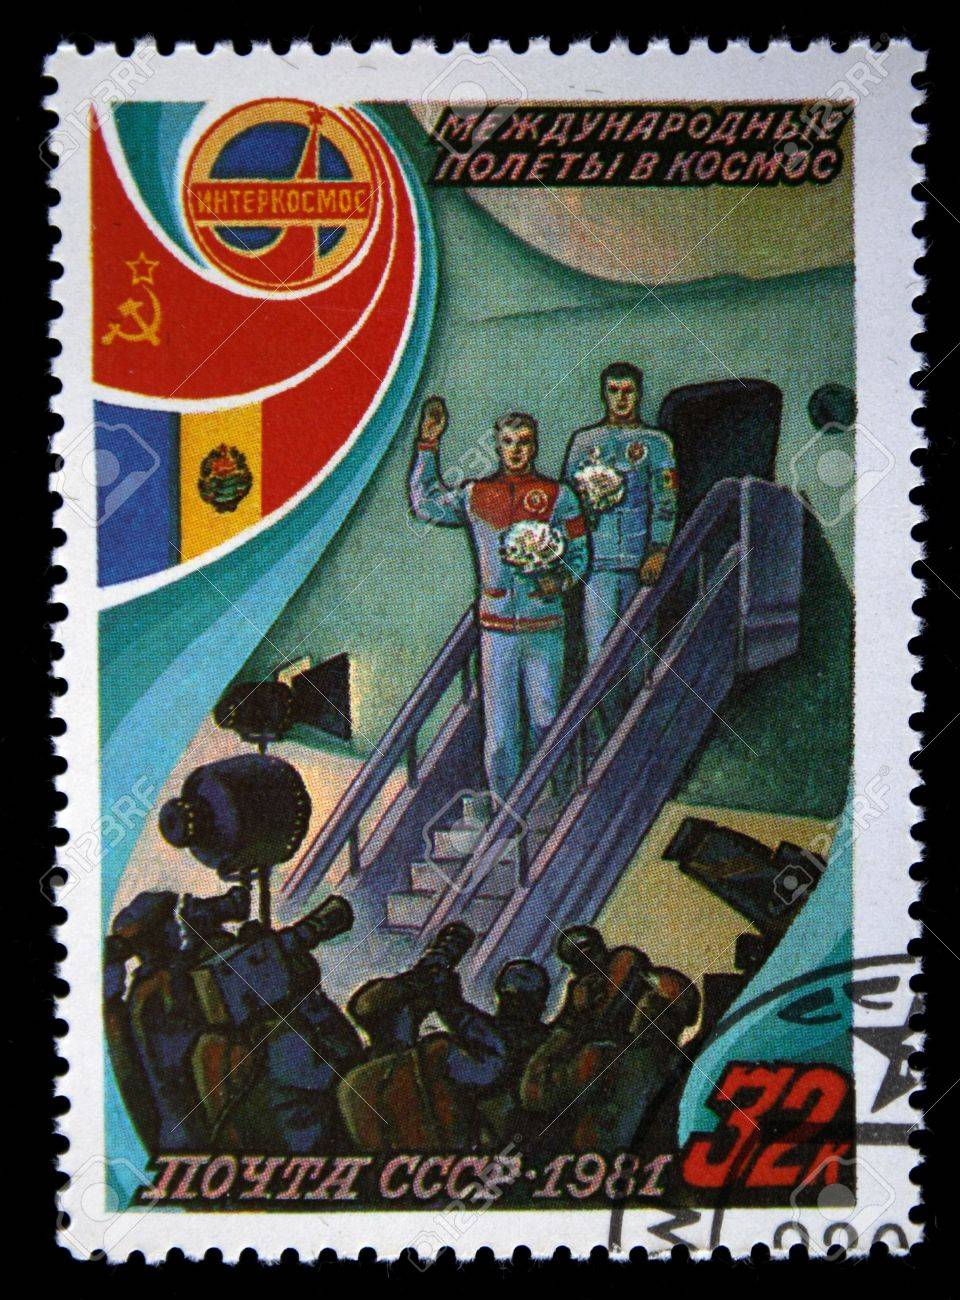 A stamp printed in the USSR shows cosmonauts, stamp from series honoring international cosmic flights and devoted coopertion of USSR and Romania, circa 1981. Stock Photo - 5632168